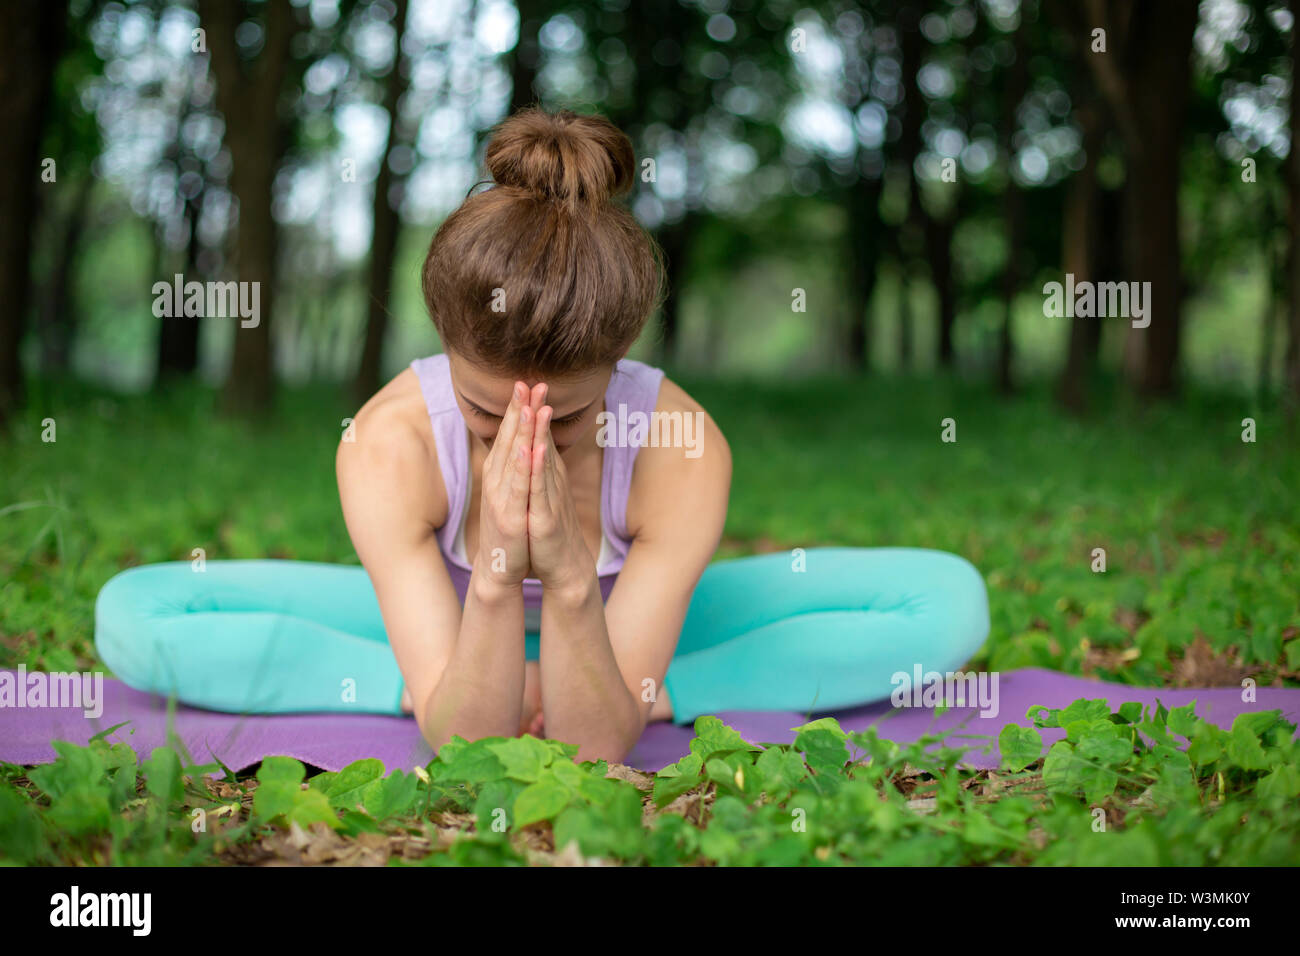 Thin brunette girl plays sports and performs beautiful and sophisticated yoga poses in a summer park. Green forest on the background. Woman doing exer - Stock Image